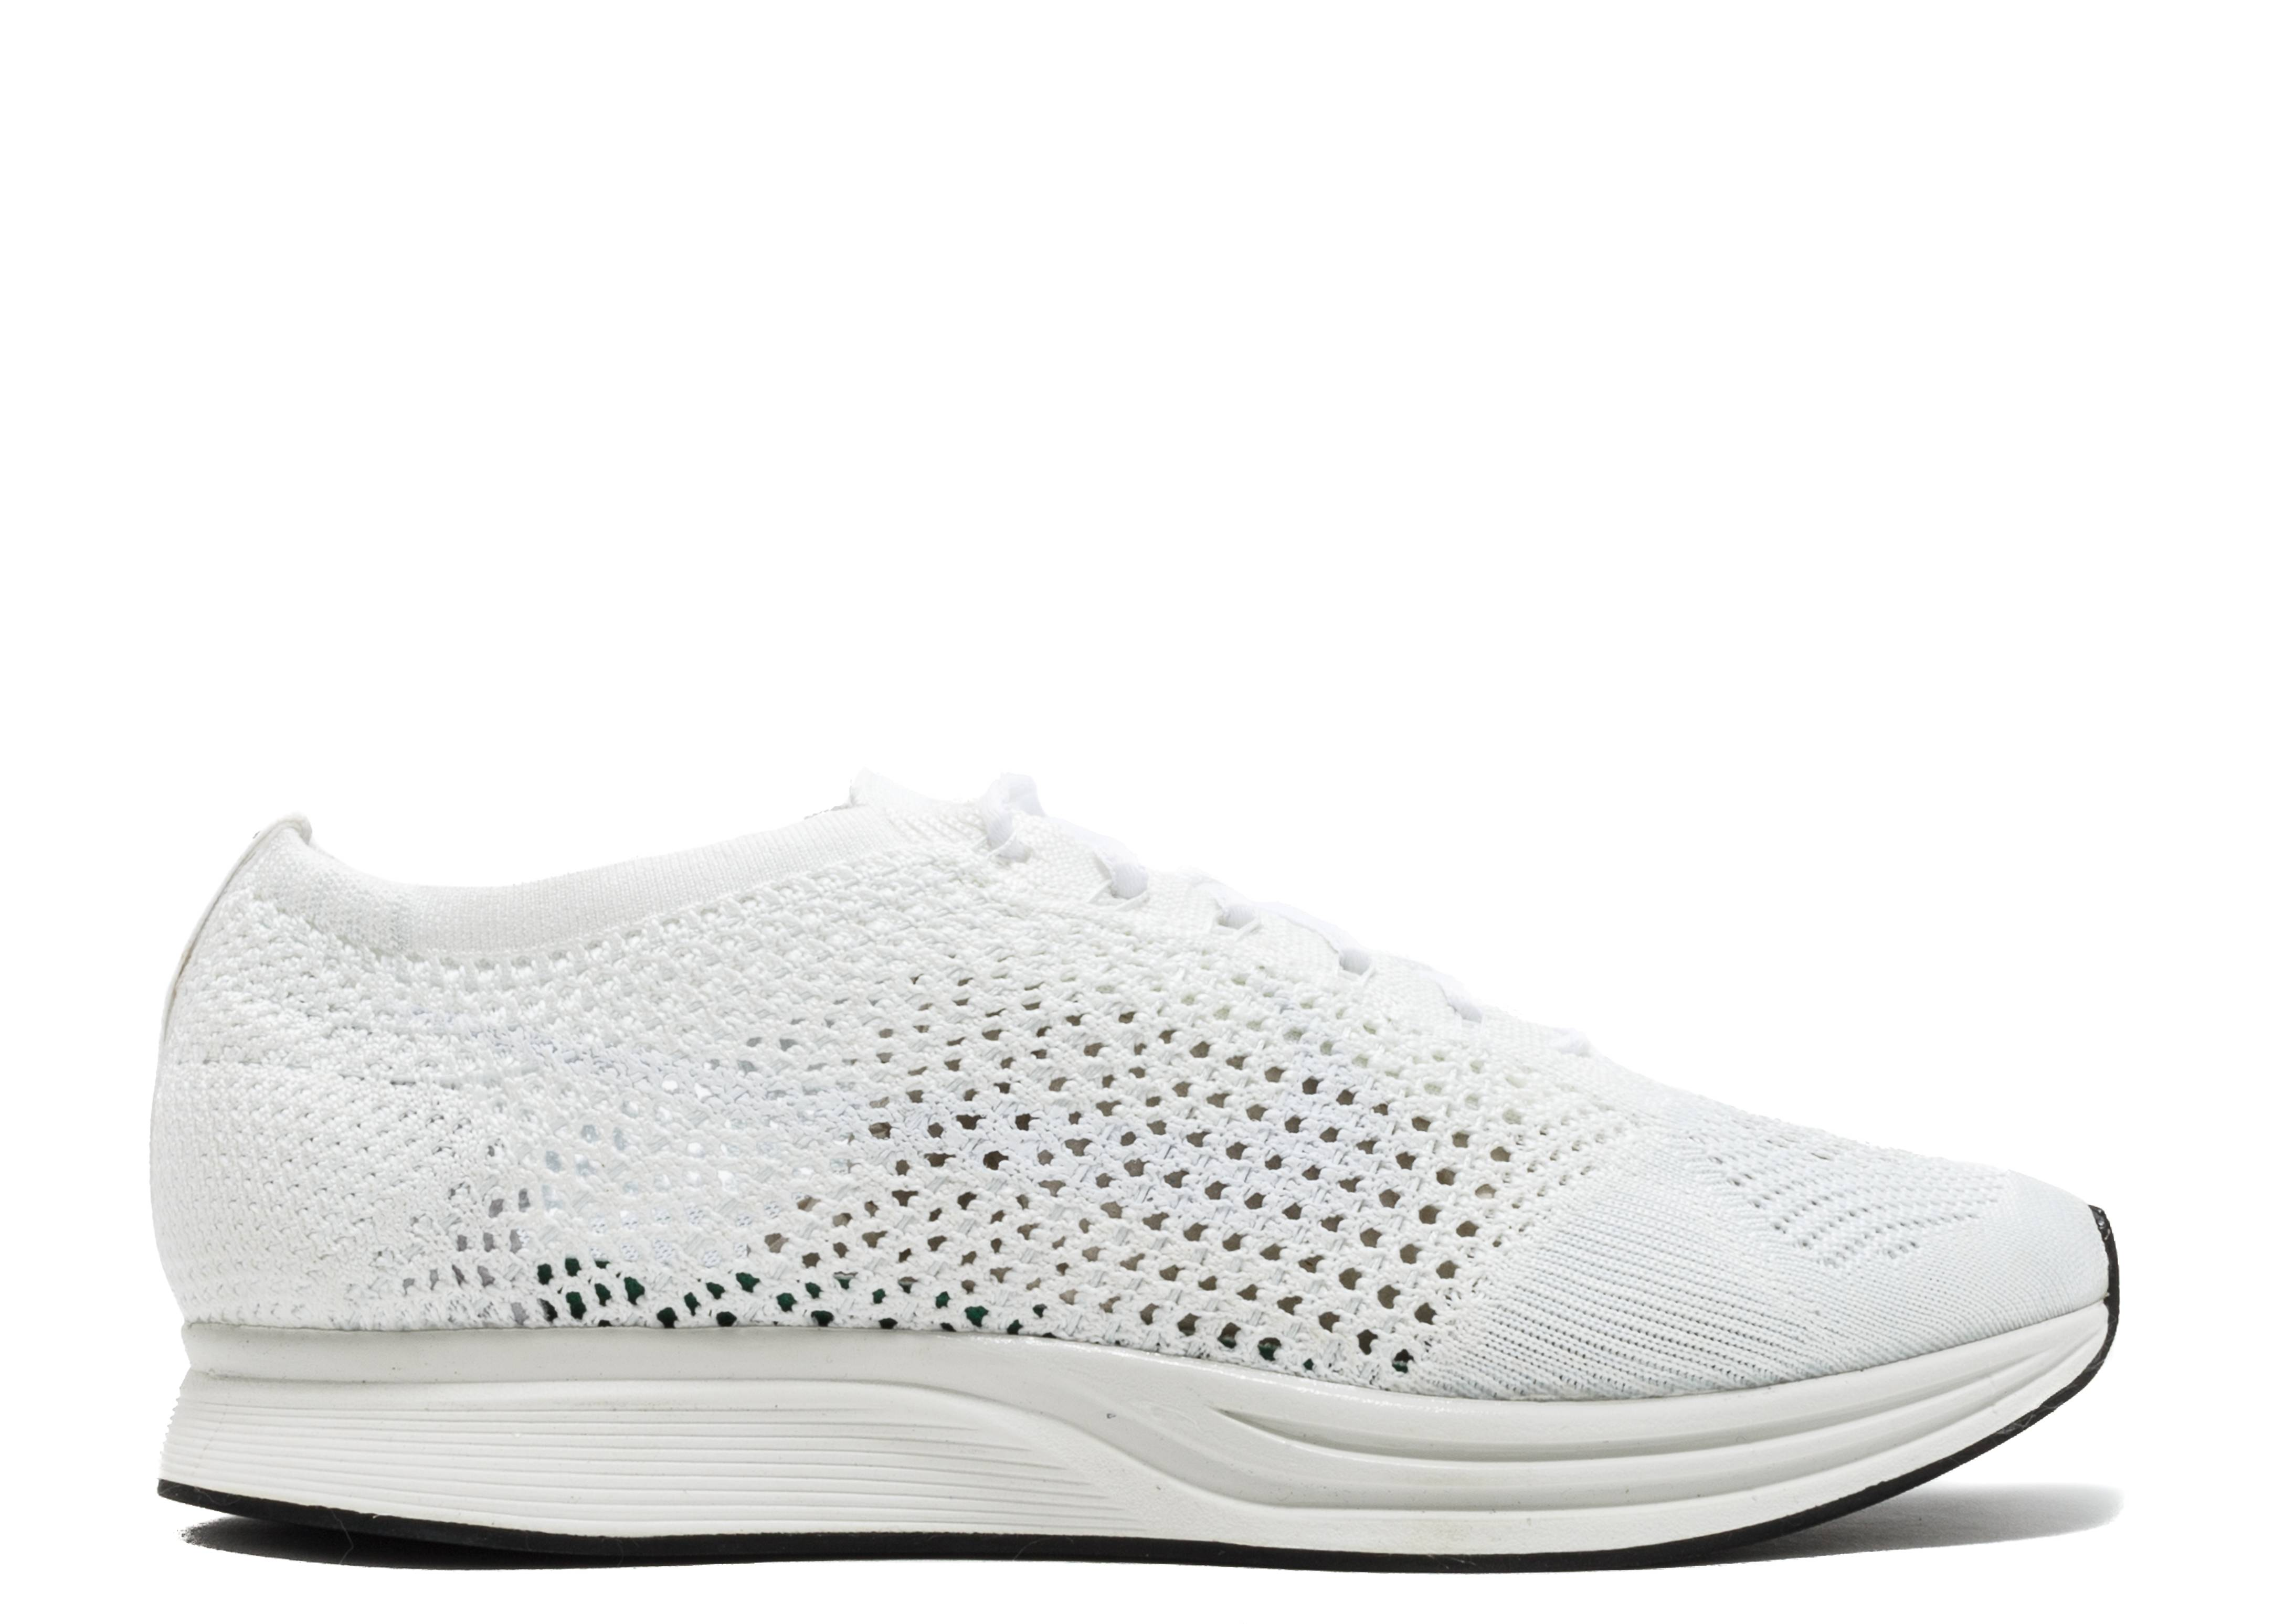 9f70c82a1d2cd Flyknit Racer - Nike - 526628 100 - white white-sail-pure platinum ...